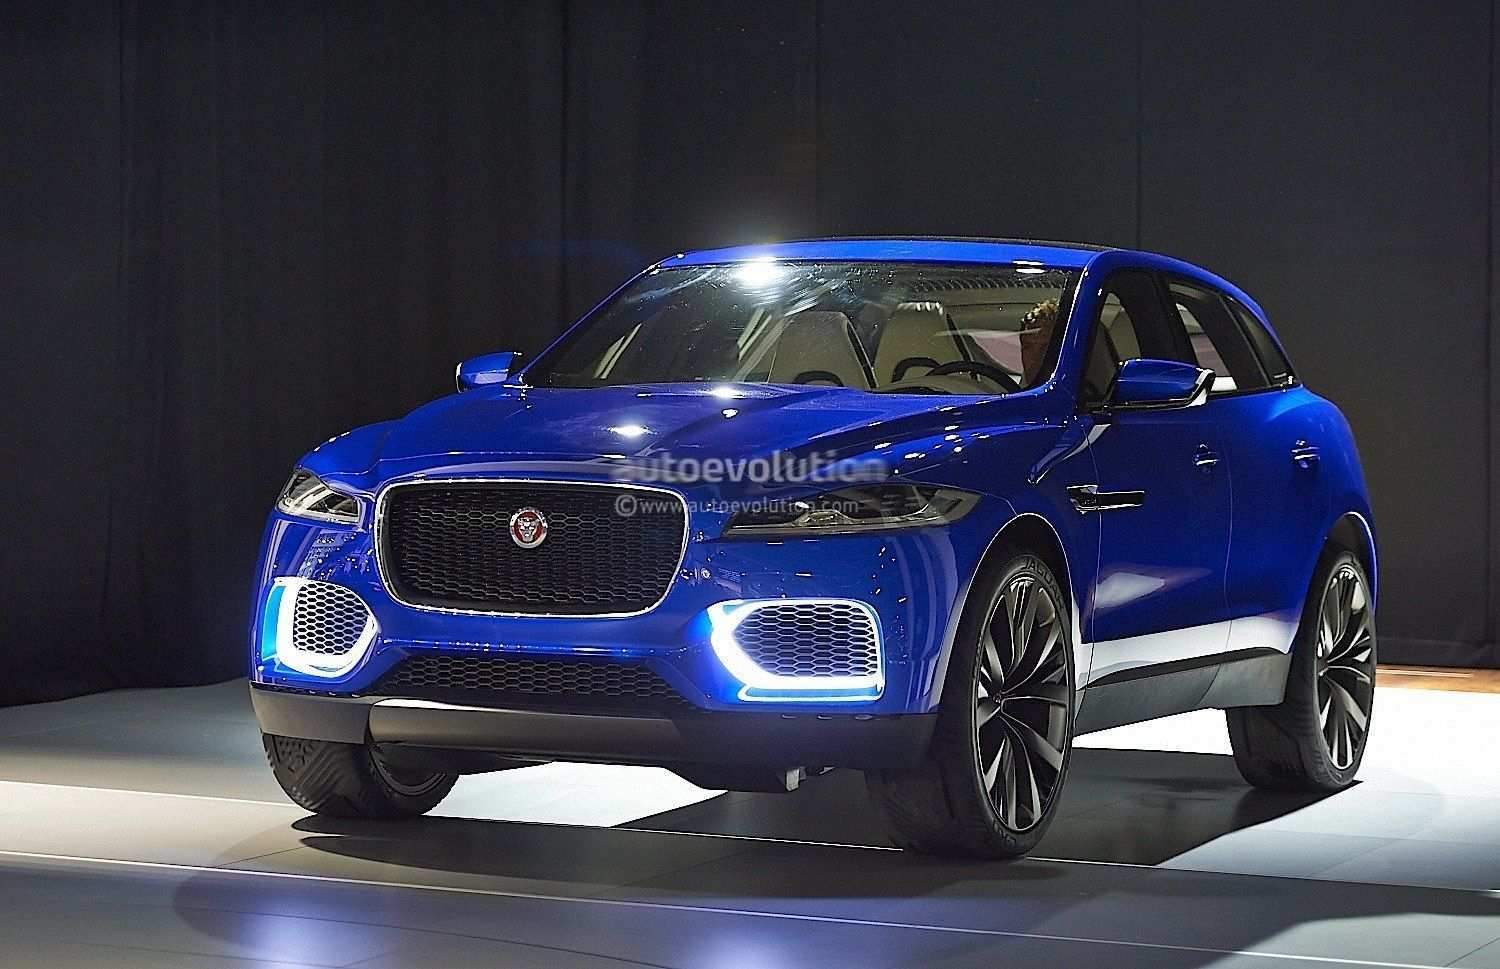 80 The 2020 Jaguar C X17 Crossover Exterior And Interior